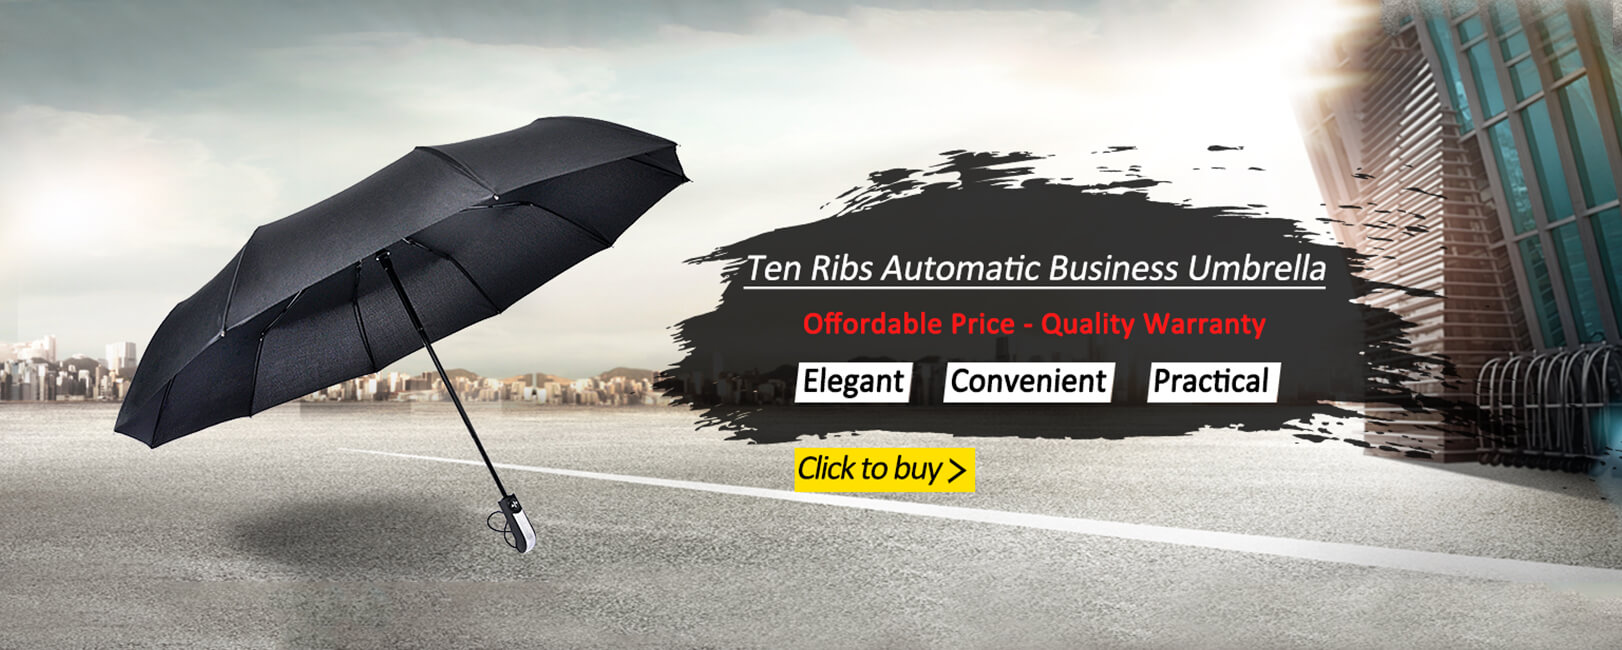 golf umbrella,custom umbrella,straight umbrella, advertising umbrella,promotional umbrella,